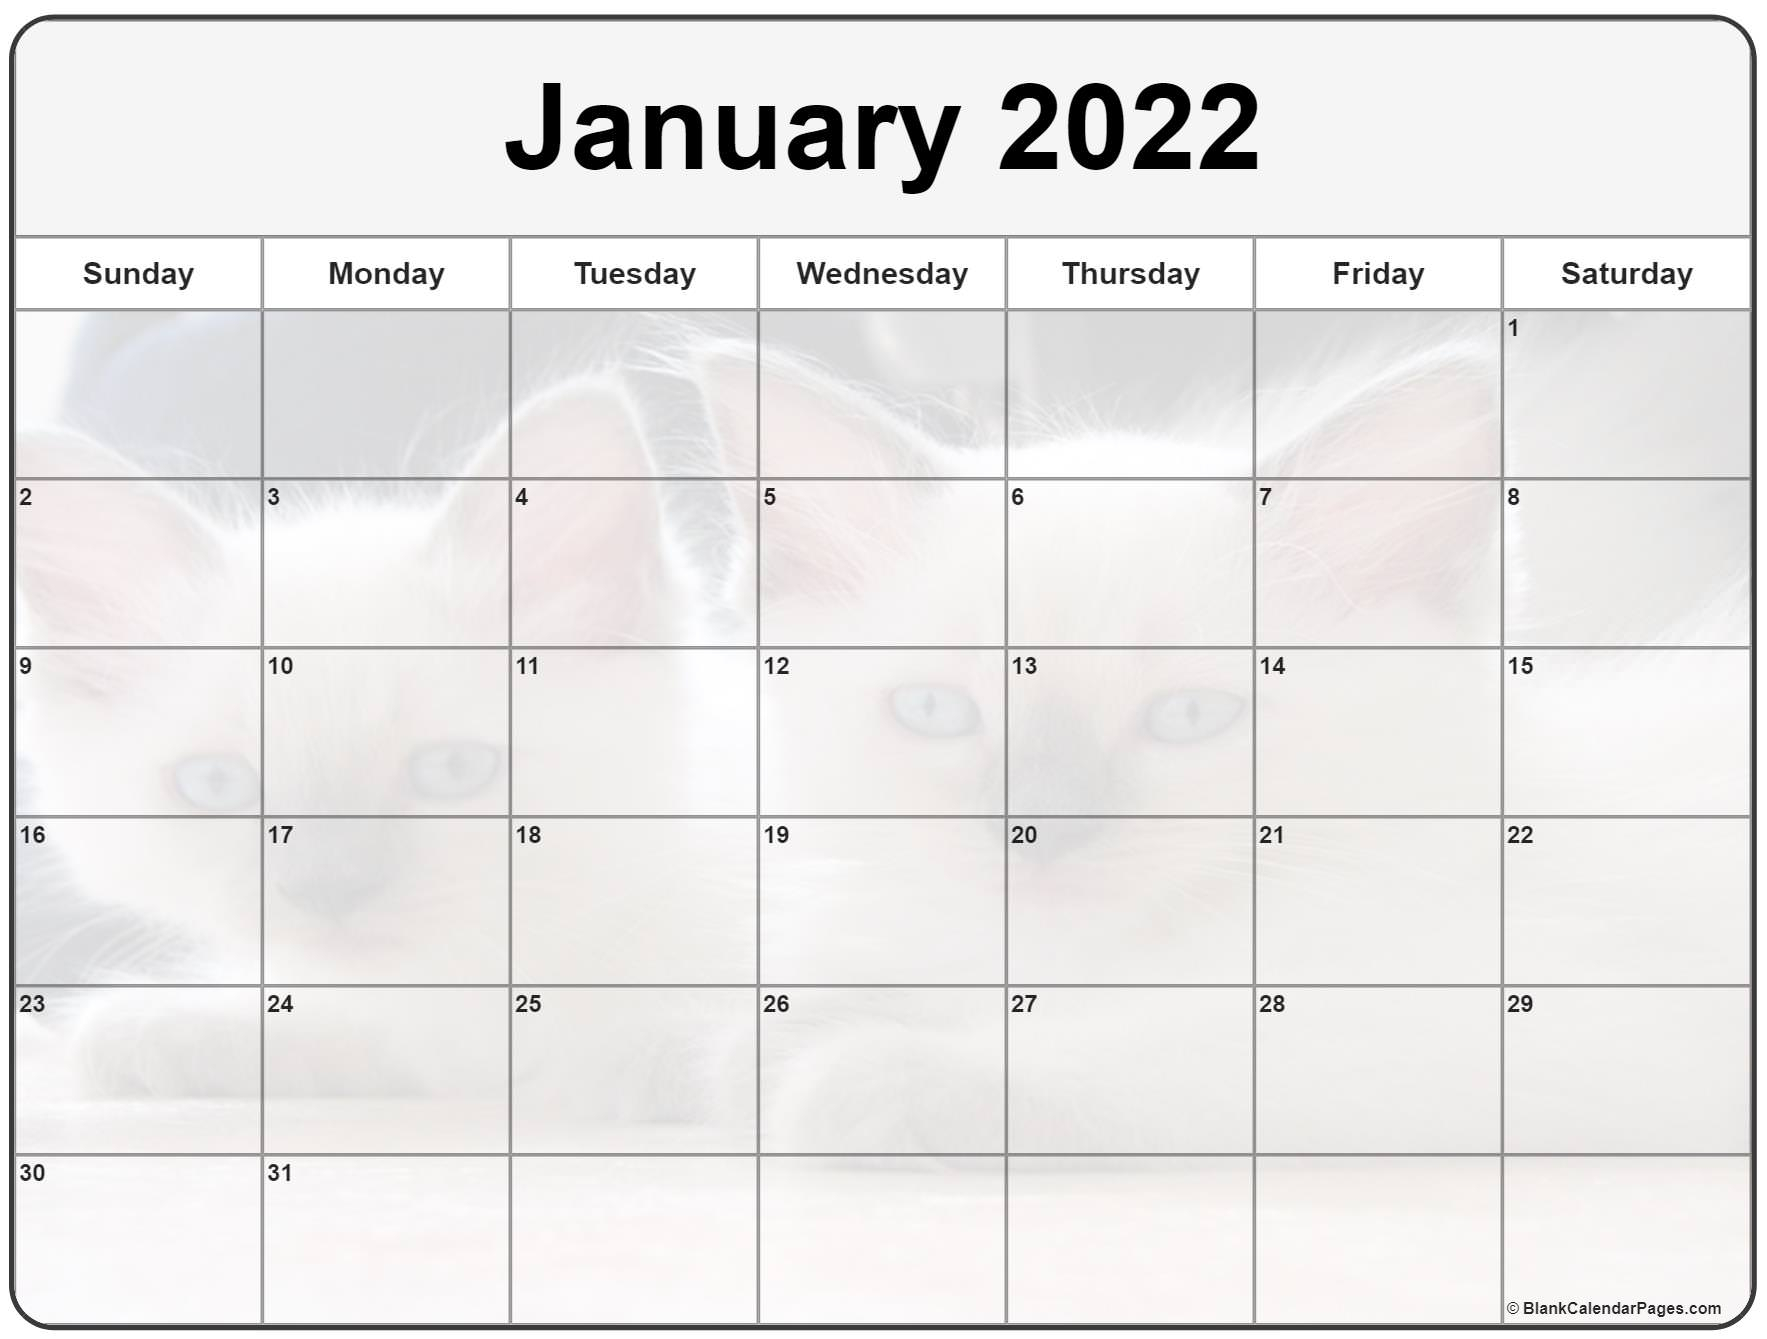 Collection Of January 2022 Photo Calendars With Image Filters. Throughout Landscape Calendar January 2022